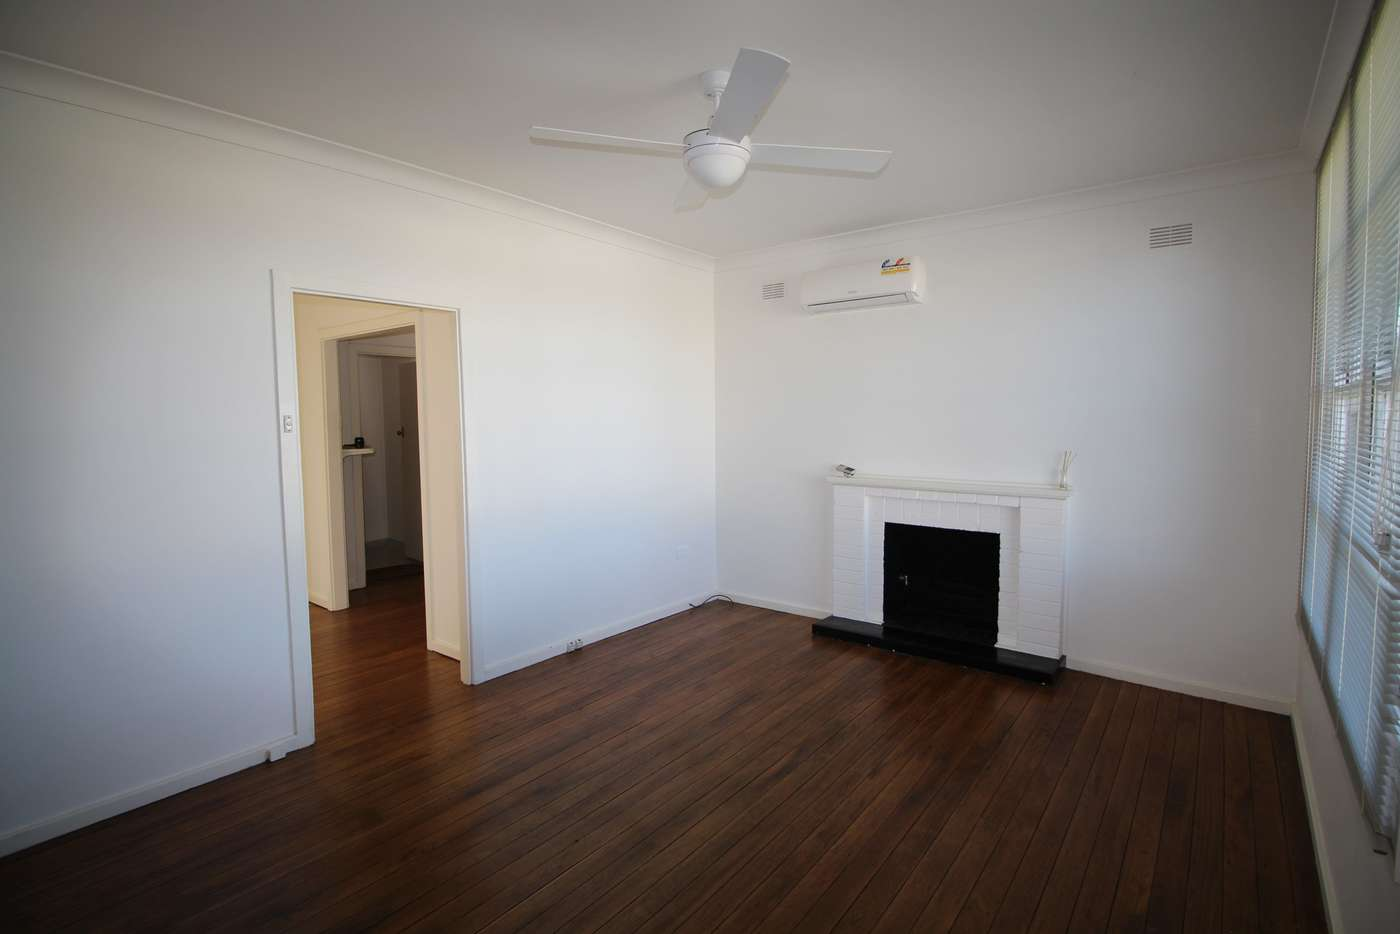 Seventh view of Homely house listing, 6 Lambert Street, Cessnock NSW 2325